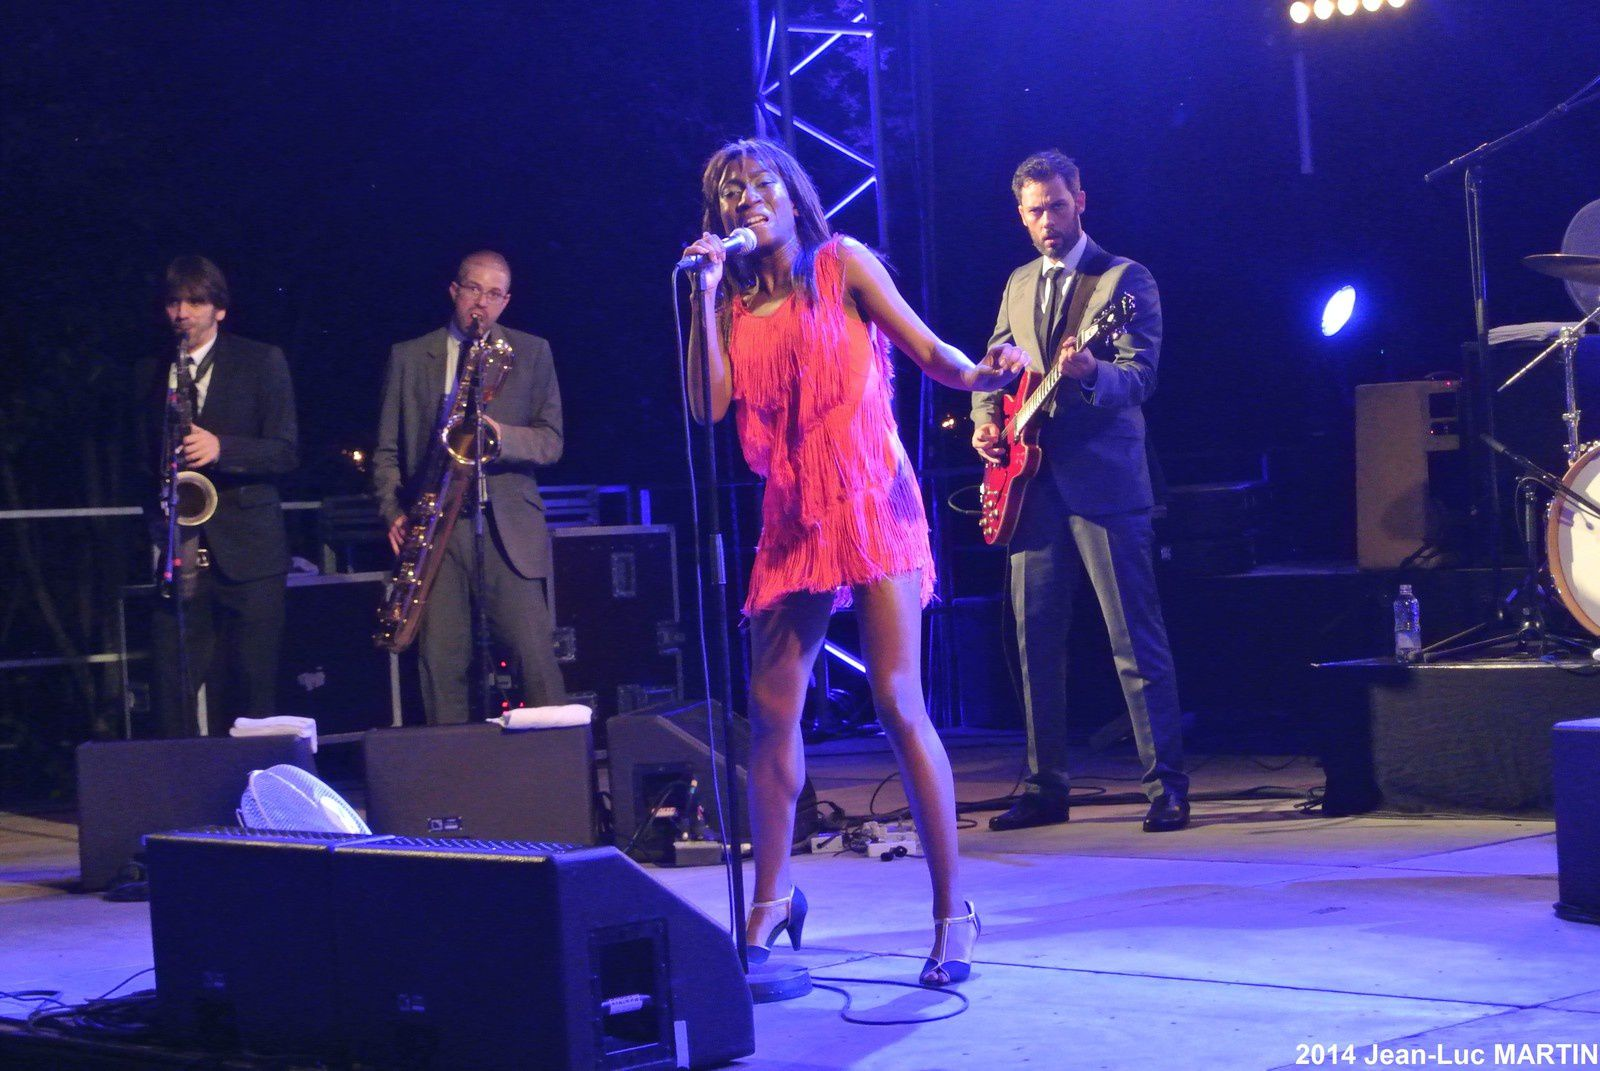 THE EXCITMENTS A NIORT LE 17/07/2014